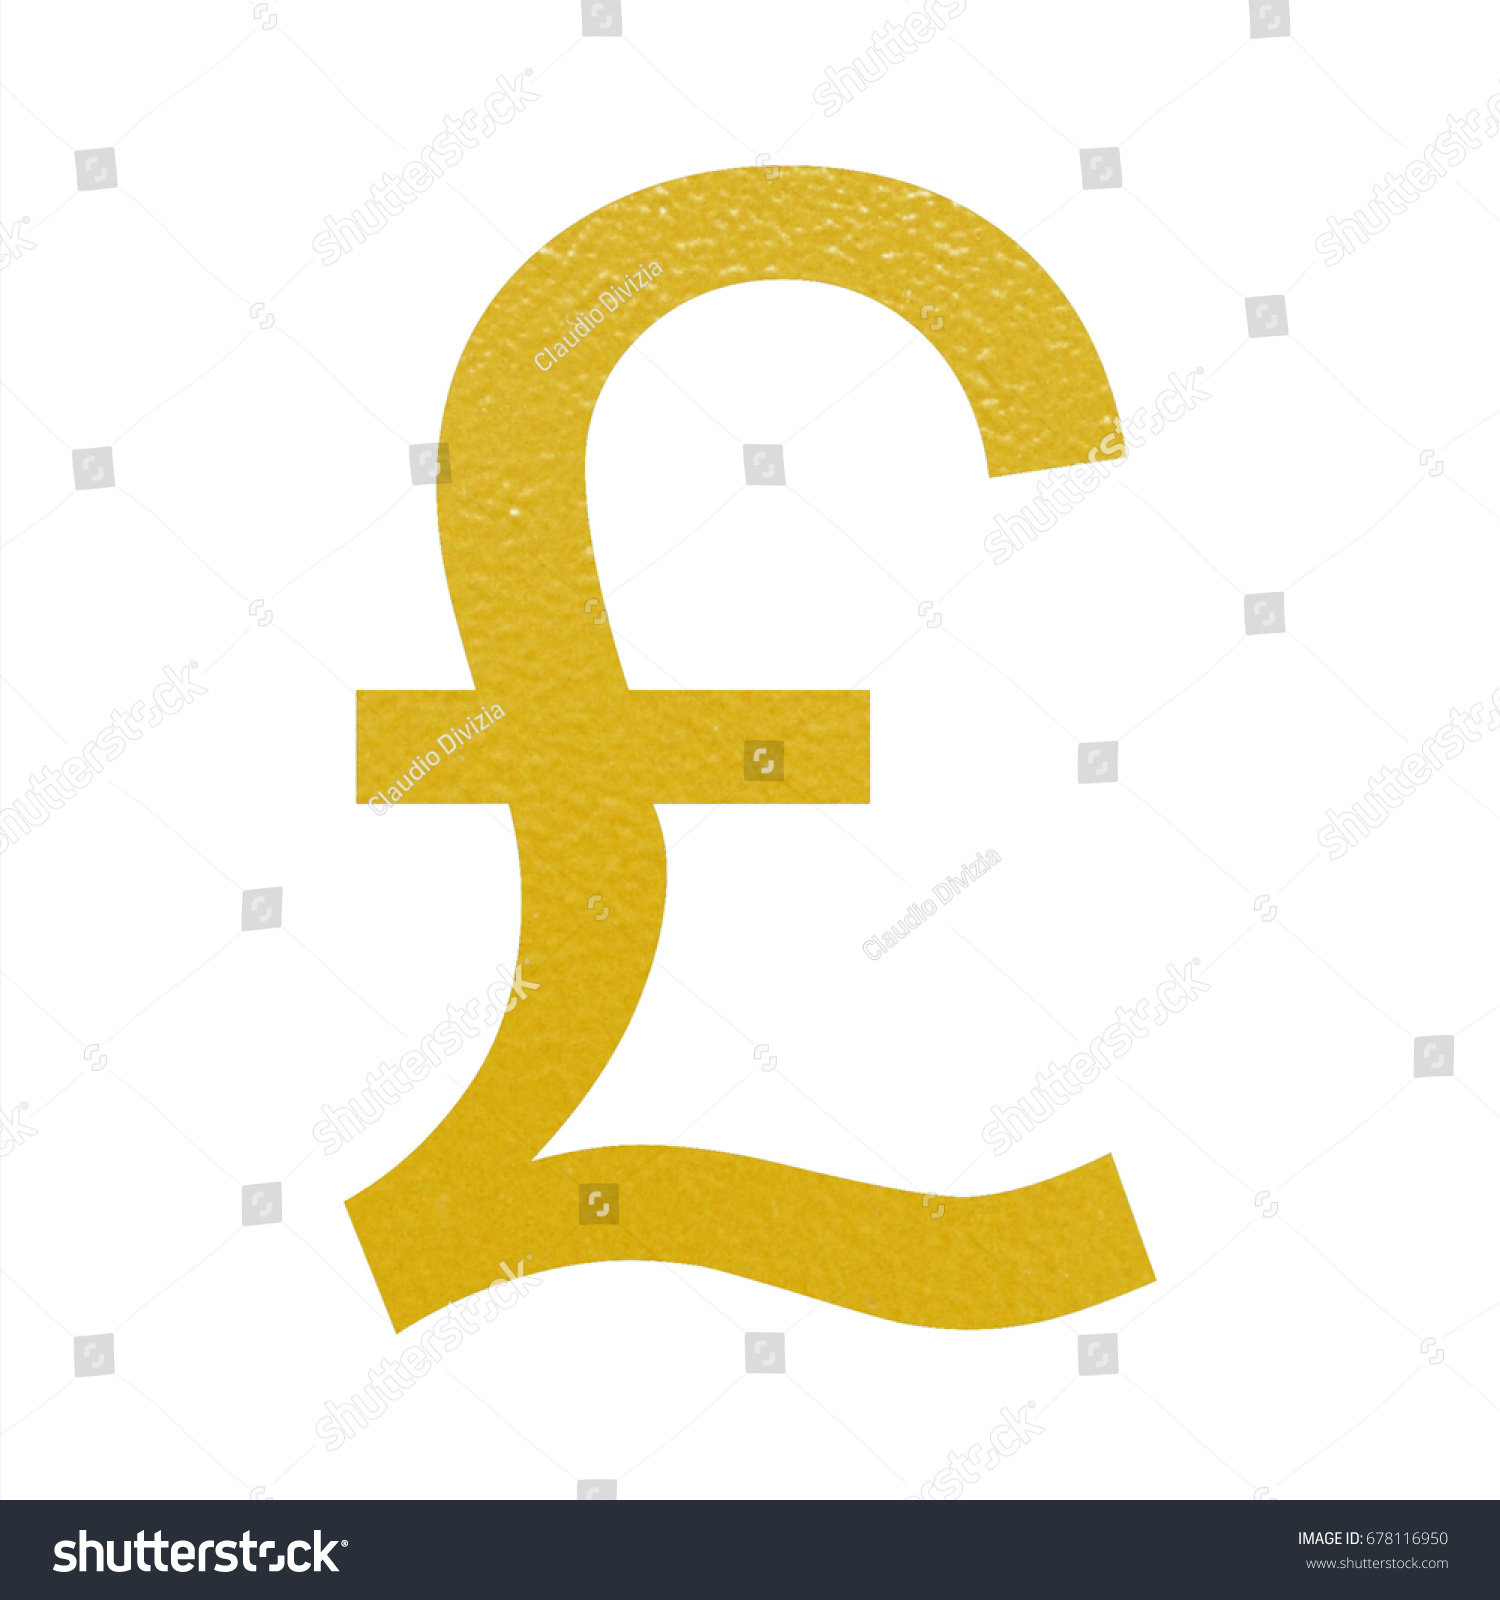 Golden Gbp British Pound Currency Symbol Stock Illustration